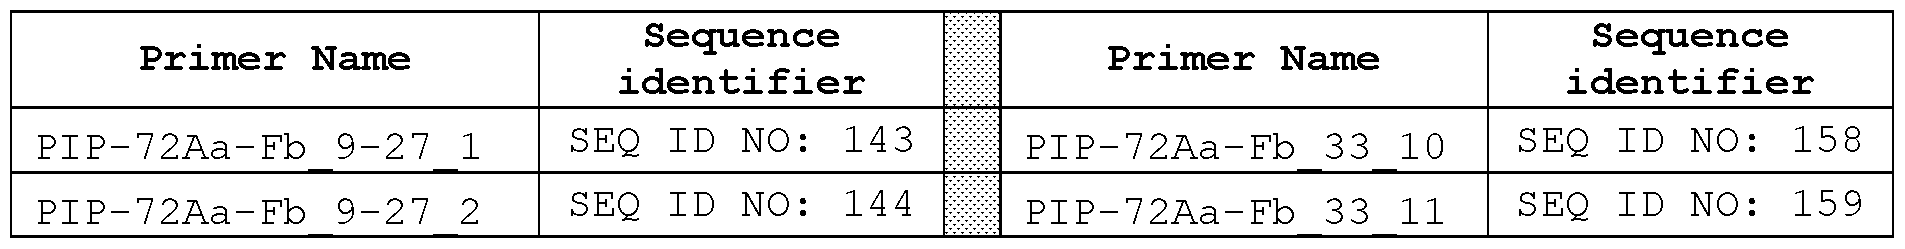 WO2016144686A1 - Structure based methods for modification of pip-72